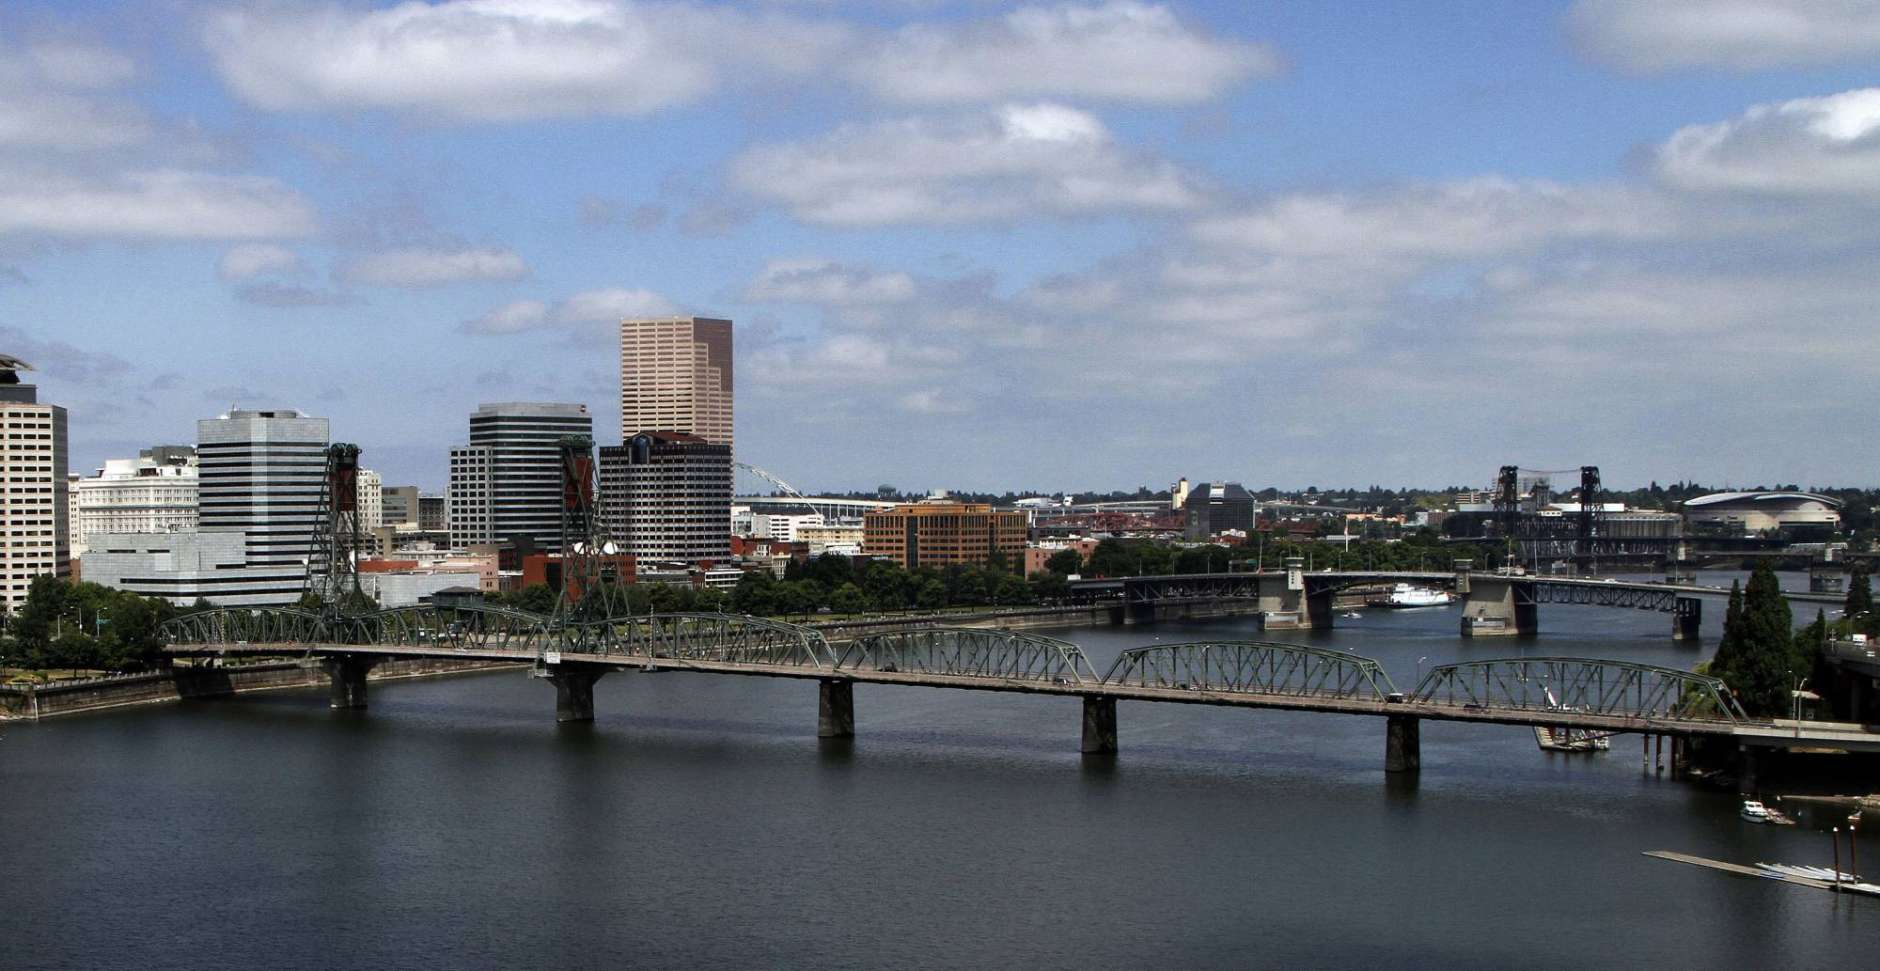 FILE - In this Aug. 1, 2012 file photo, the downtown skyline is shown on the west bank of the Willamette River in Portland, Ore. As Oregon endures an acute housing shortage, the Legislature is considering making landlords pay tenants for no-cause evictions. The bill would also reverse a law that bans most rent controls, allowing cities and counties to adopt their own rent-controls.  (AP Photo/Don Ryan, File)